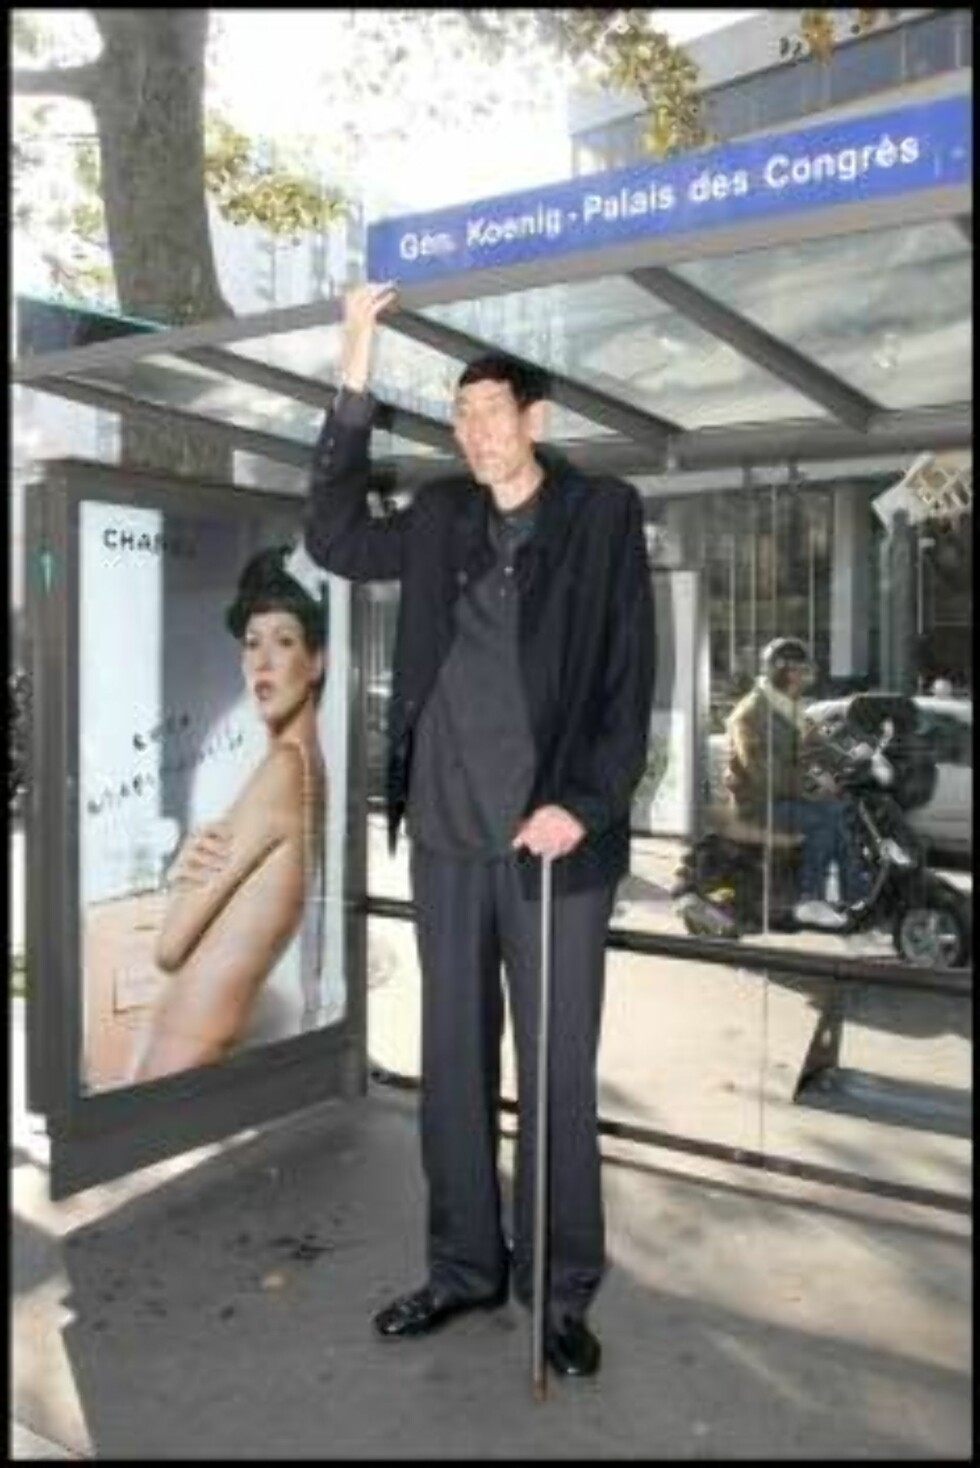 PARIS 2006-10-10.  TALLEST MAN IN THE WORLD VISITING PARIS. XI SHUN IS CHINESE, HE' S 2,36 m. TALL, WEIGHS 117 KG  AND EATS 1 KG OF RICE EACH DAY. HE IS NOW IN THE GUINNESS BOOK OF RECORDS 2007.  Photo: Jean-Marc Haedrich/Visual Code: 4050  COPYRIGHT STEL Foto: Stella Pictures